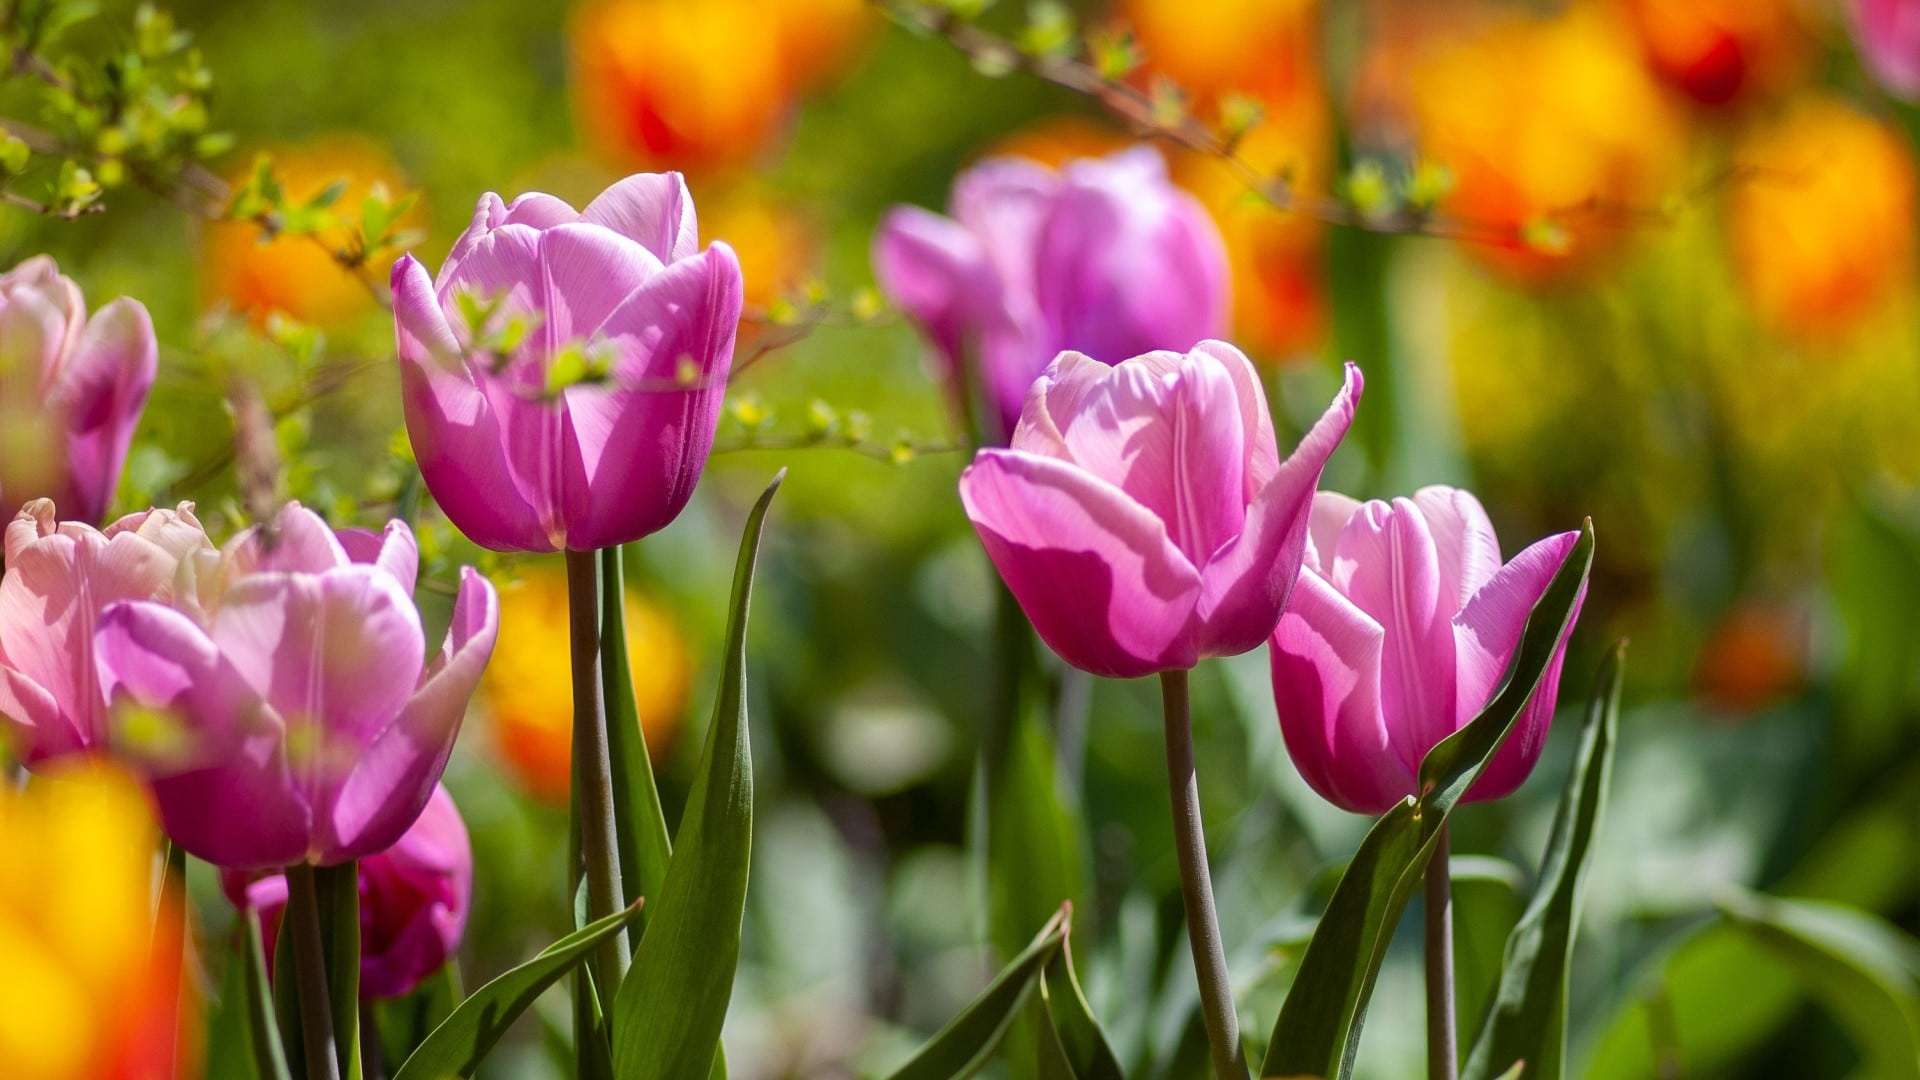 May gardening guide: what to do in your garden this May